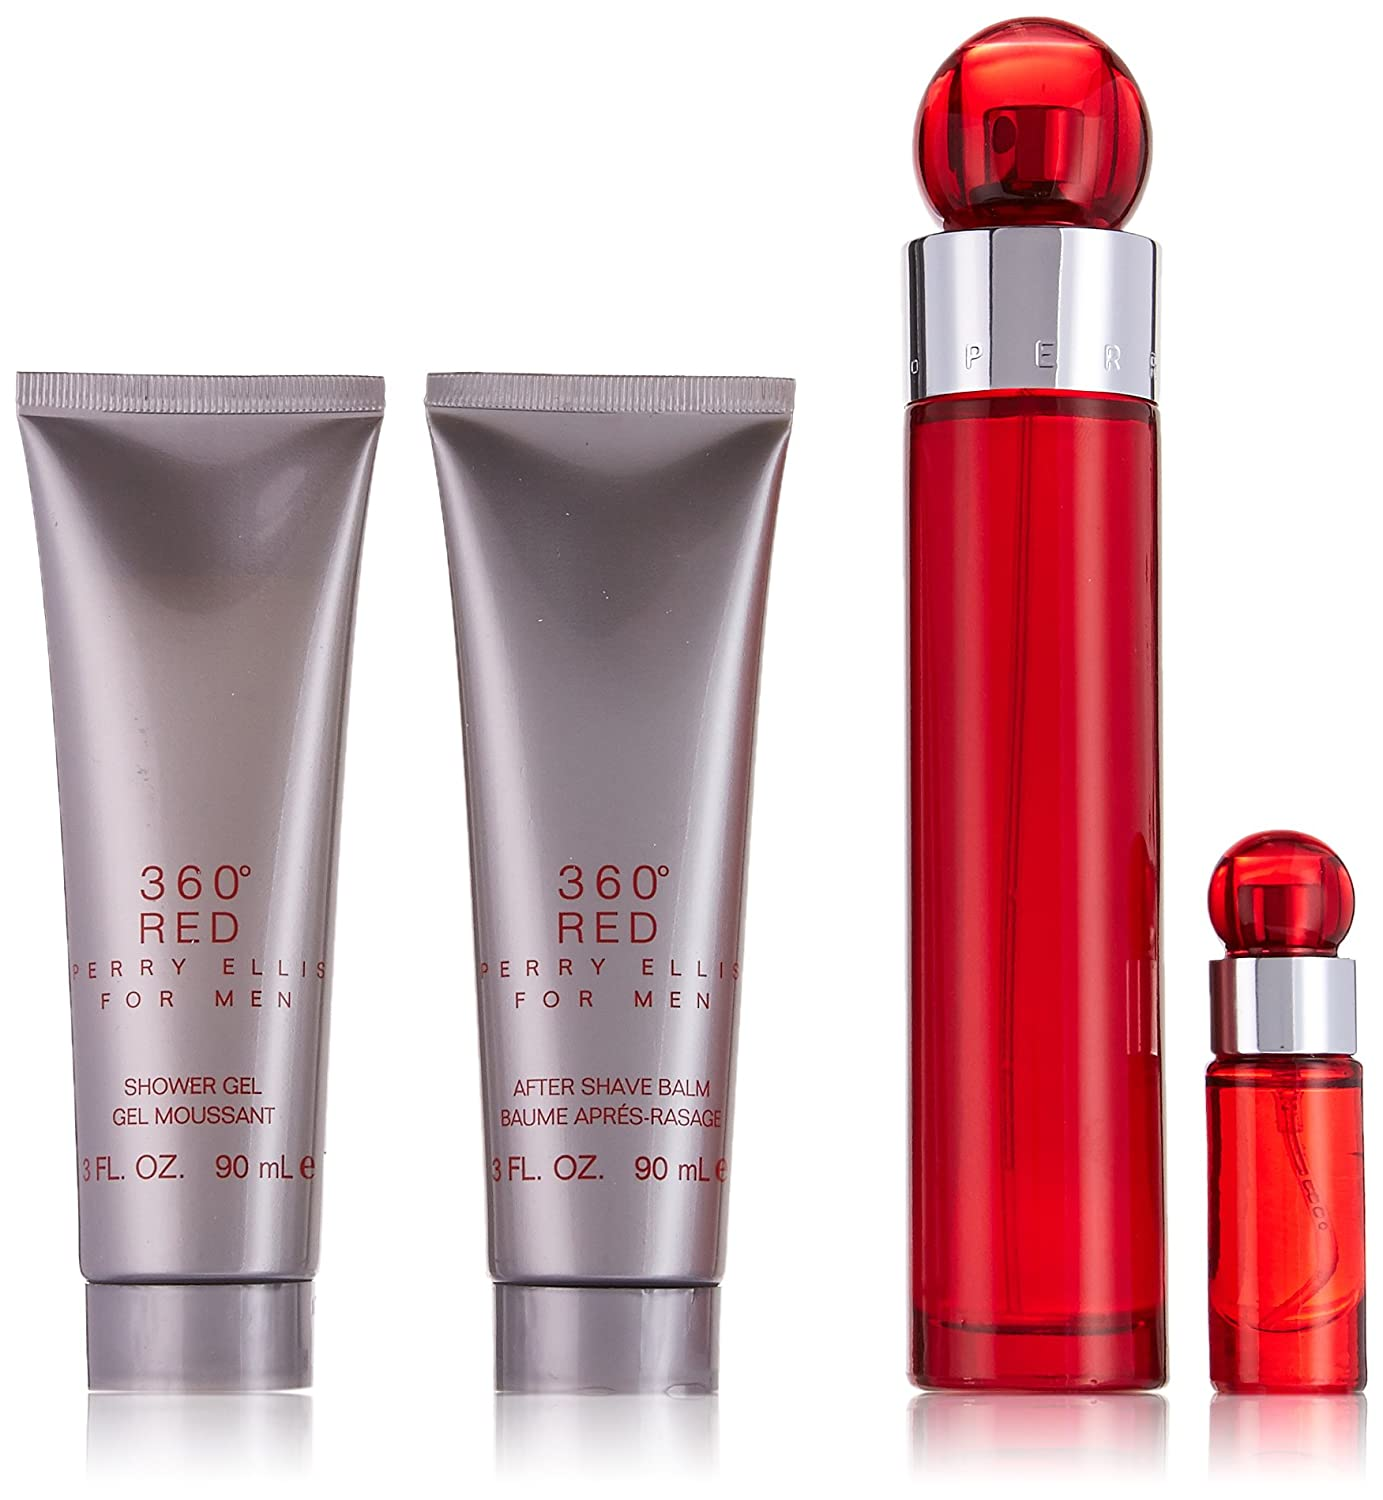 Perry Ellis 360 Red for Men 4 Pc. Gift Set M-GS-1432